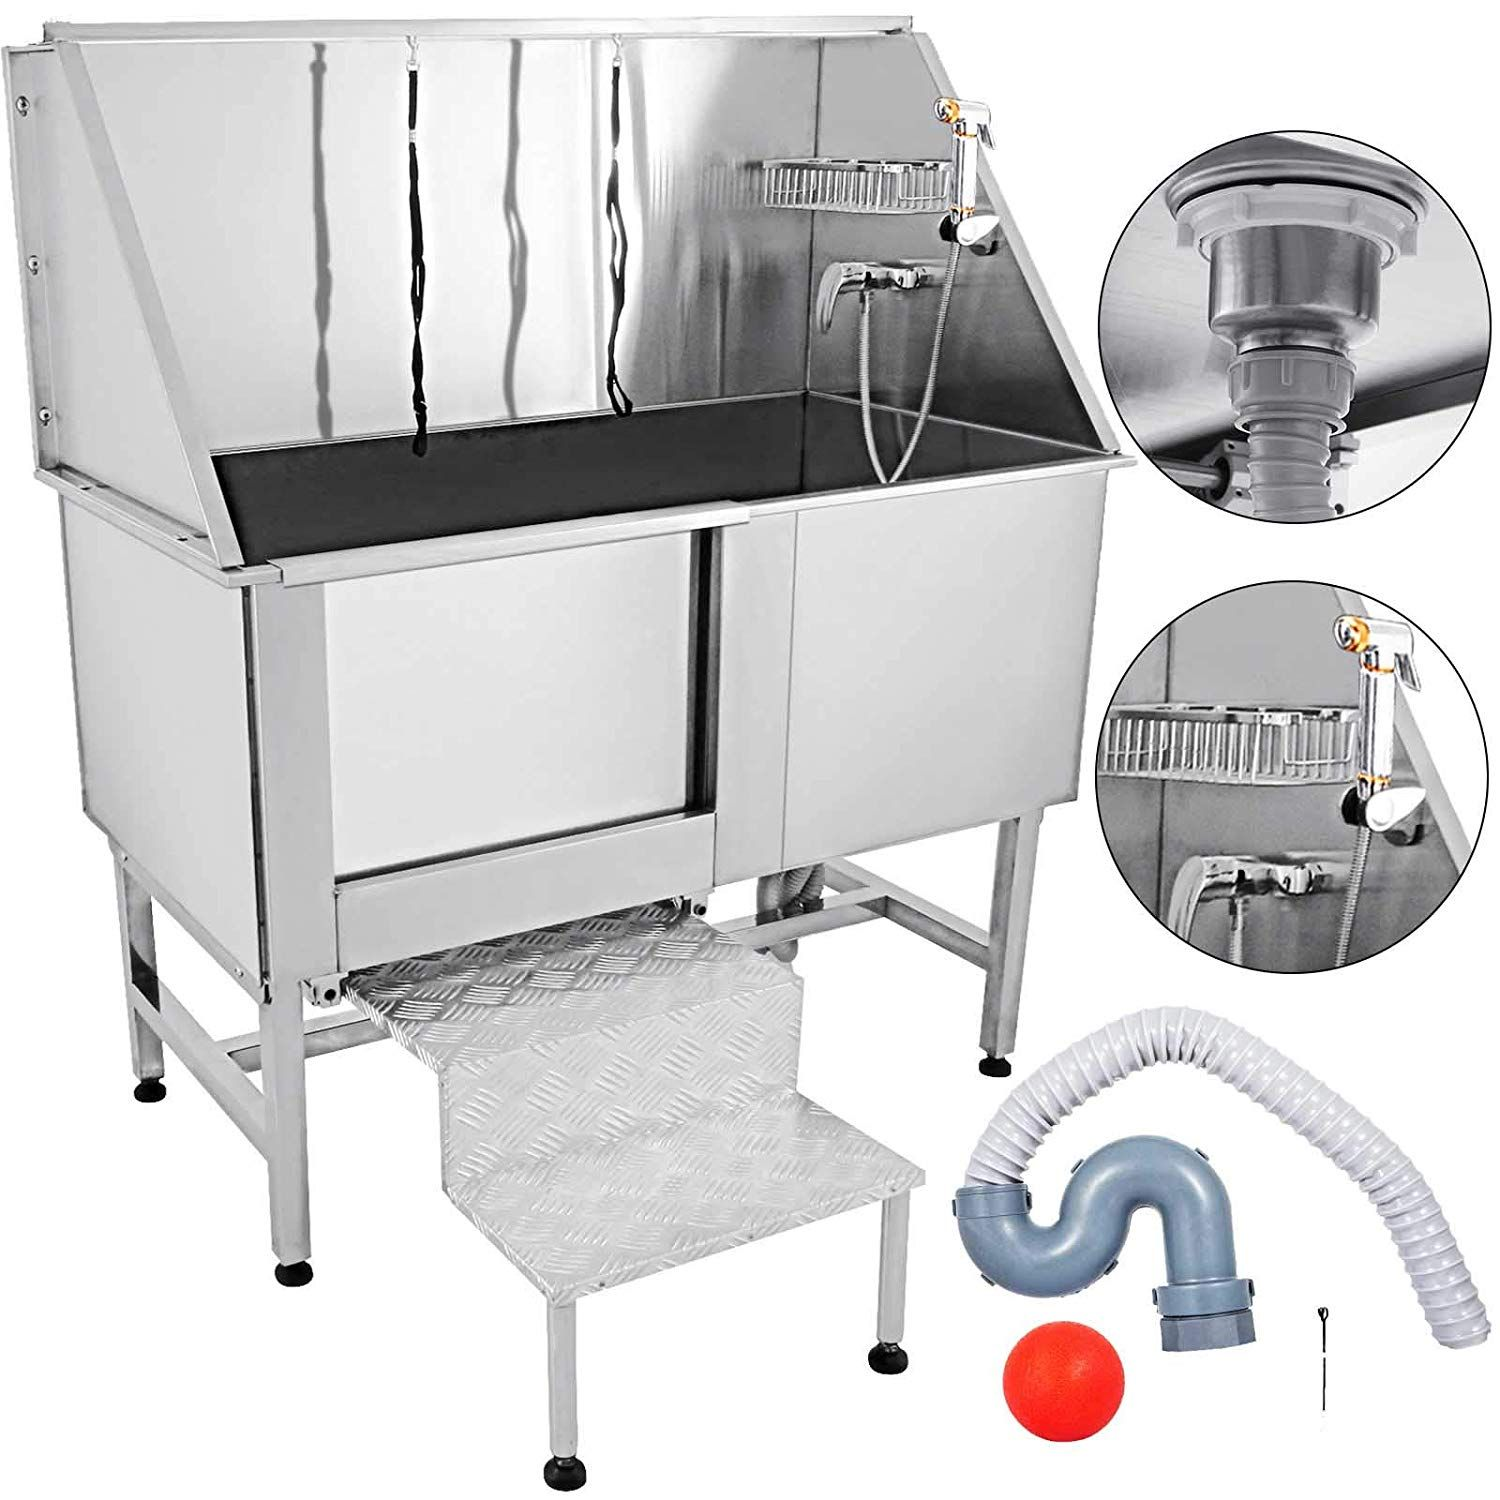 Mophorn 62 Inch Professional Dog Grooming Tub Stainless Steel Pet